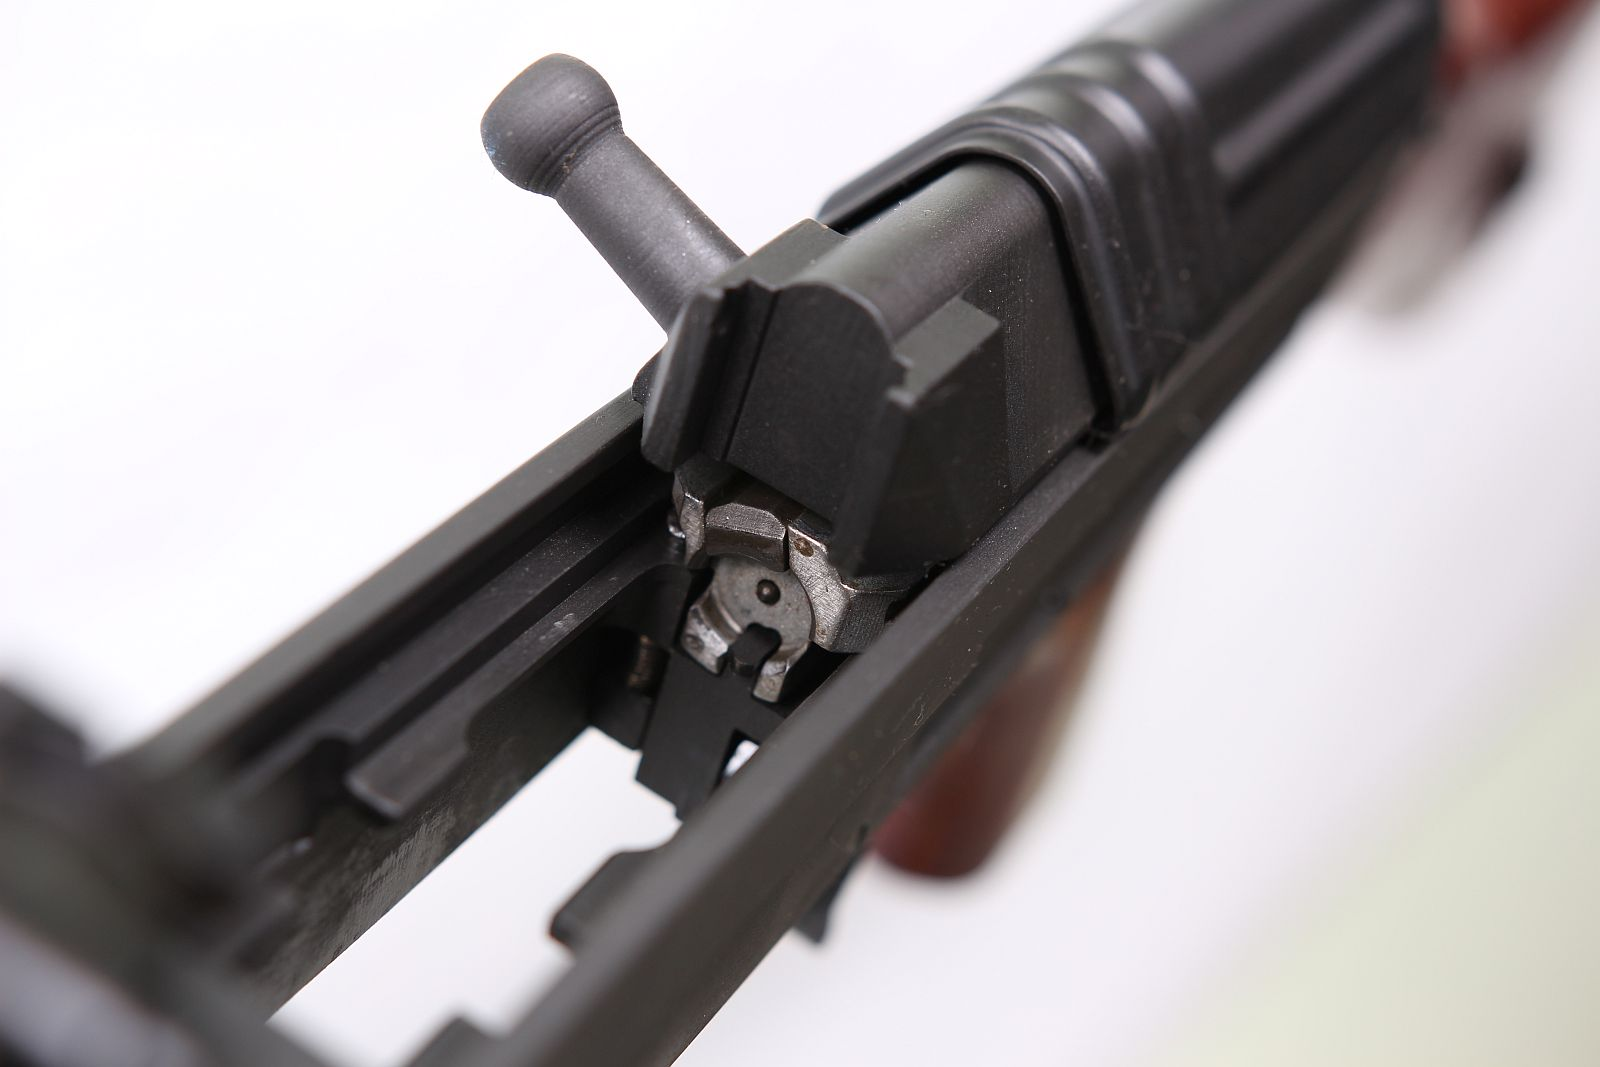 WR762 Review: A Canadian VZ58/CZ858? | The Hunting Gear Guy